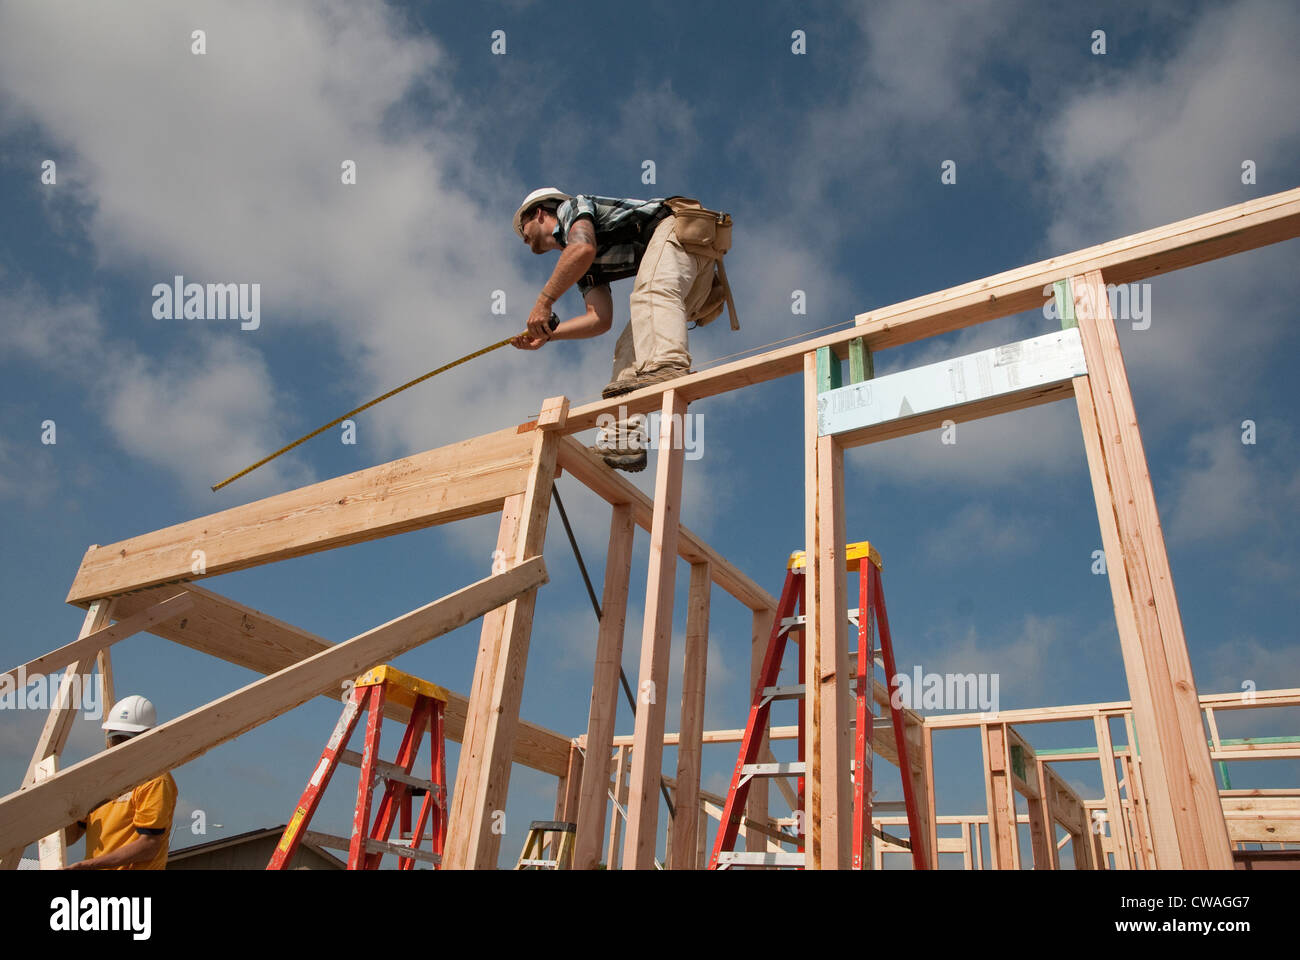 Company employees volunteer their time, help build an affordable house with Habitat for Humanity in Austin, Texas - Stock Image